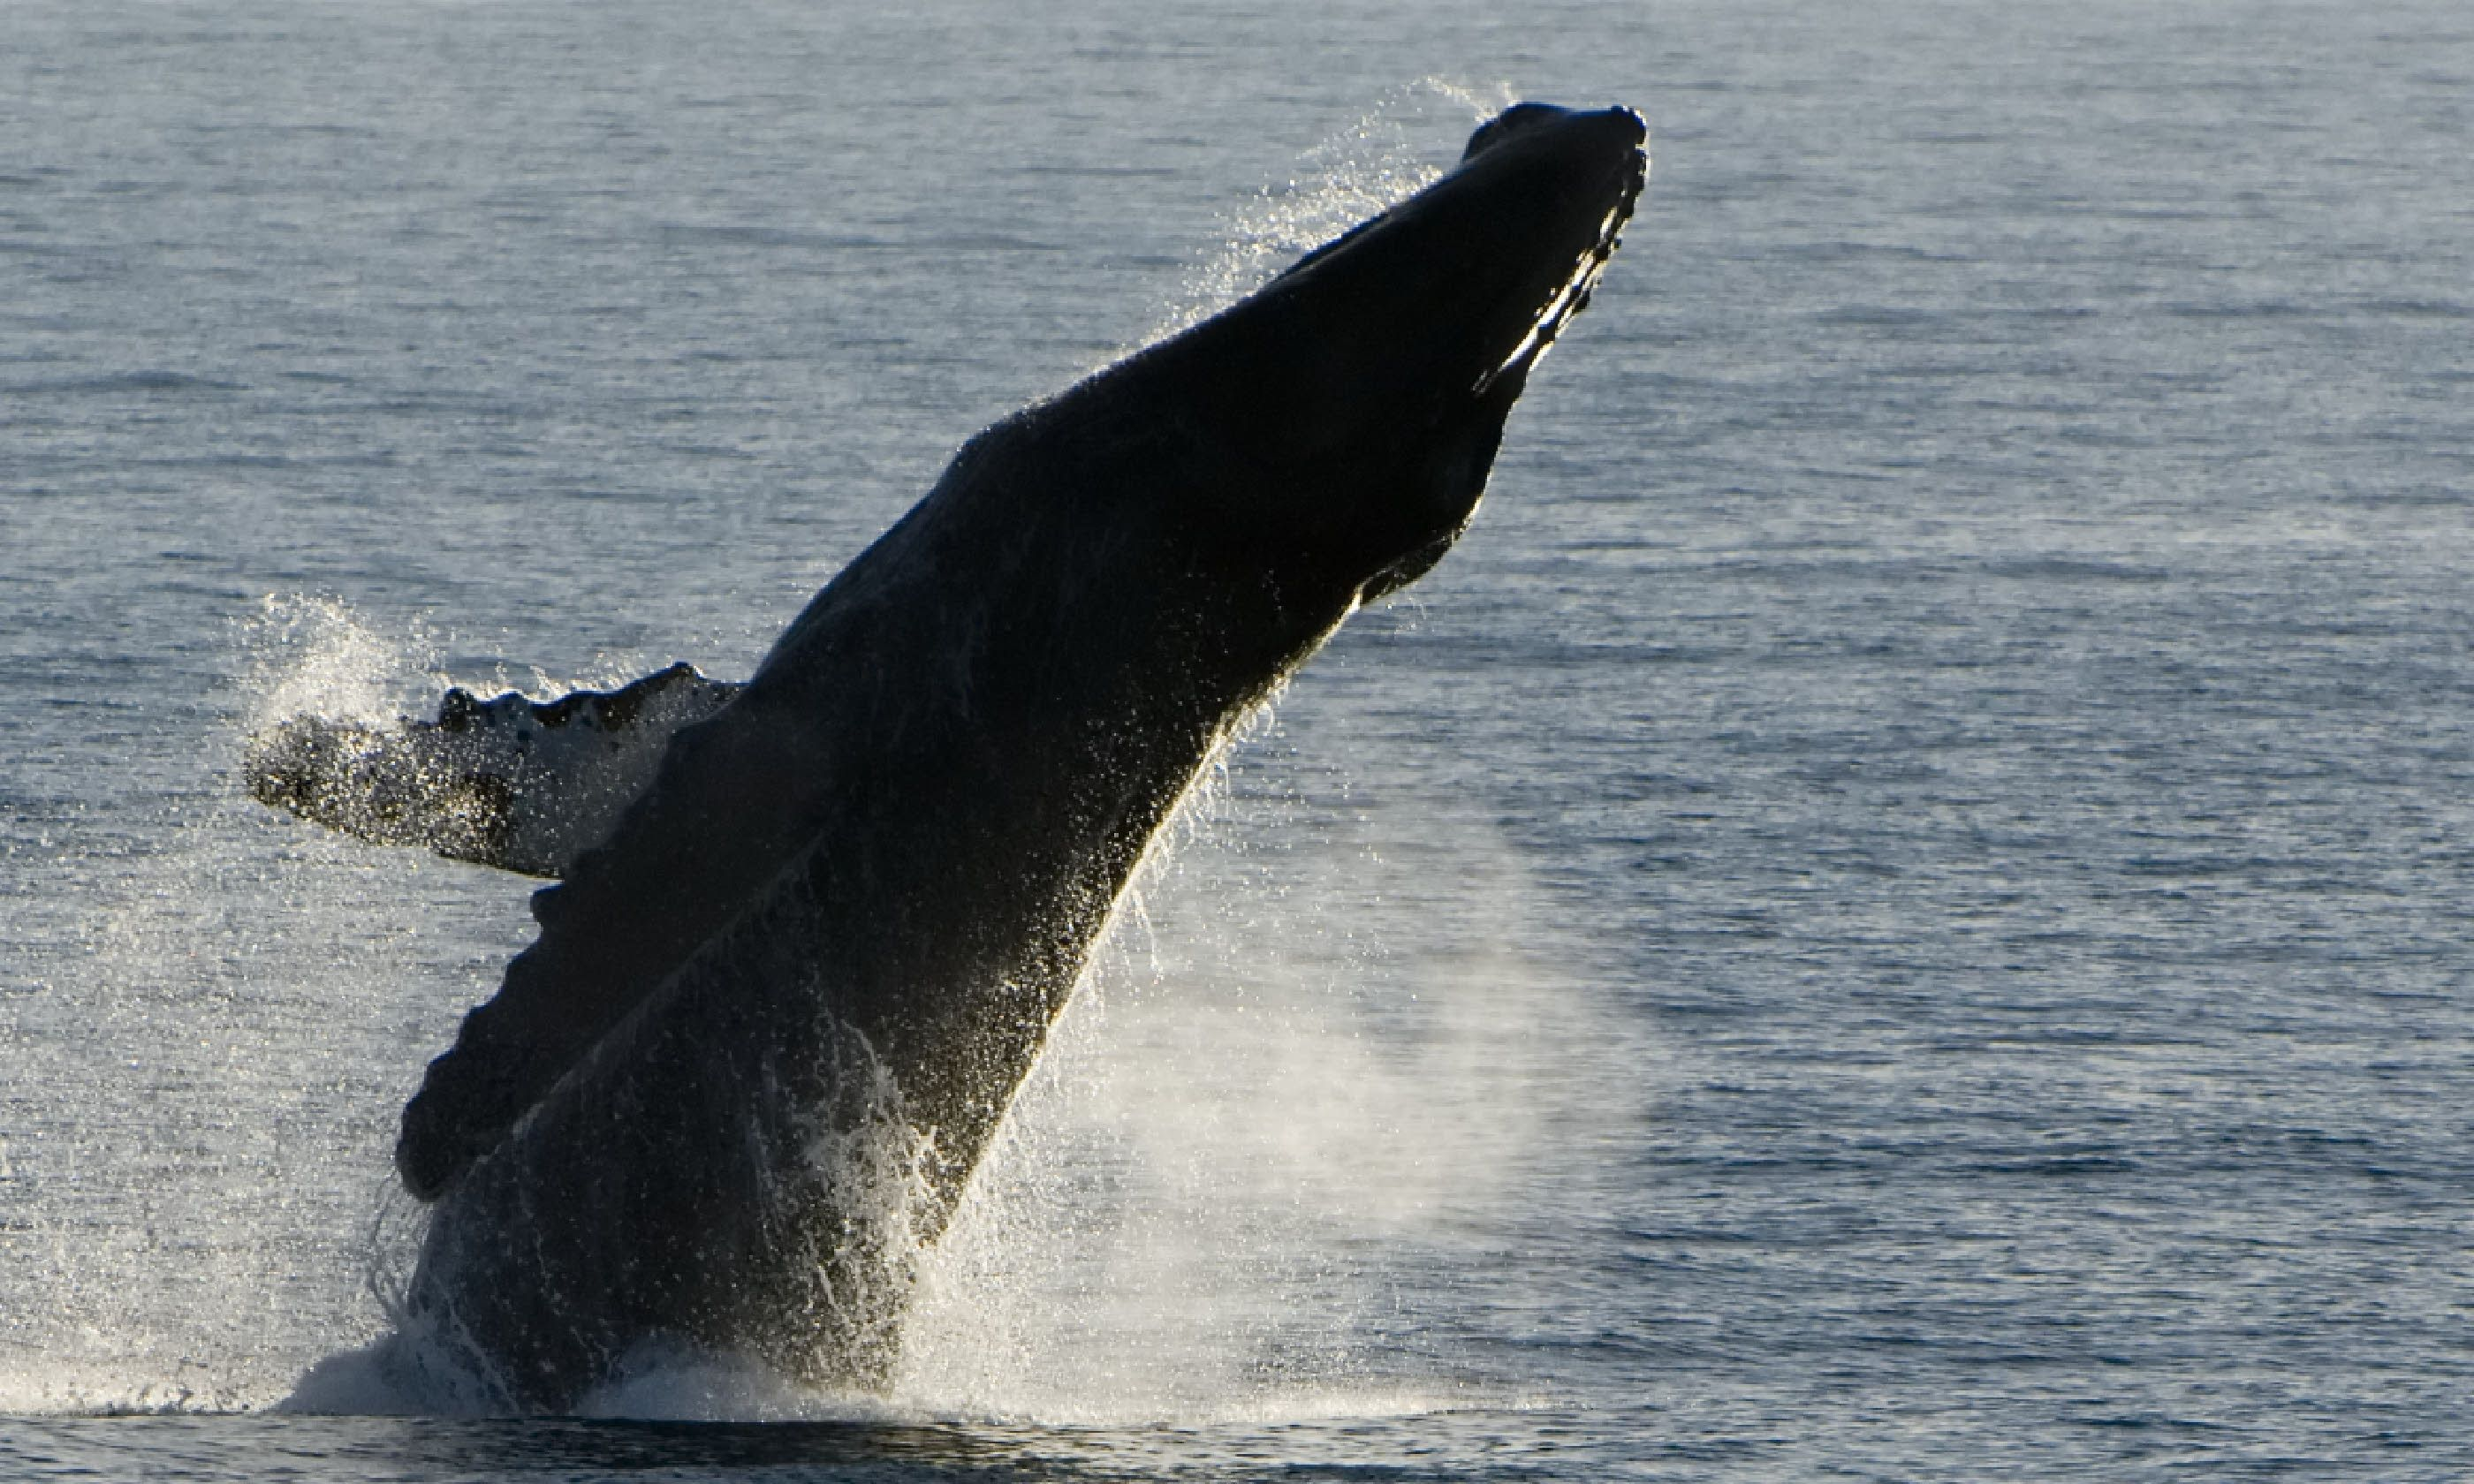 Humpback whale breach, Baja California (Shutterstock)